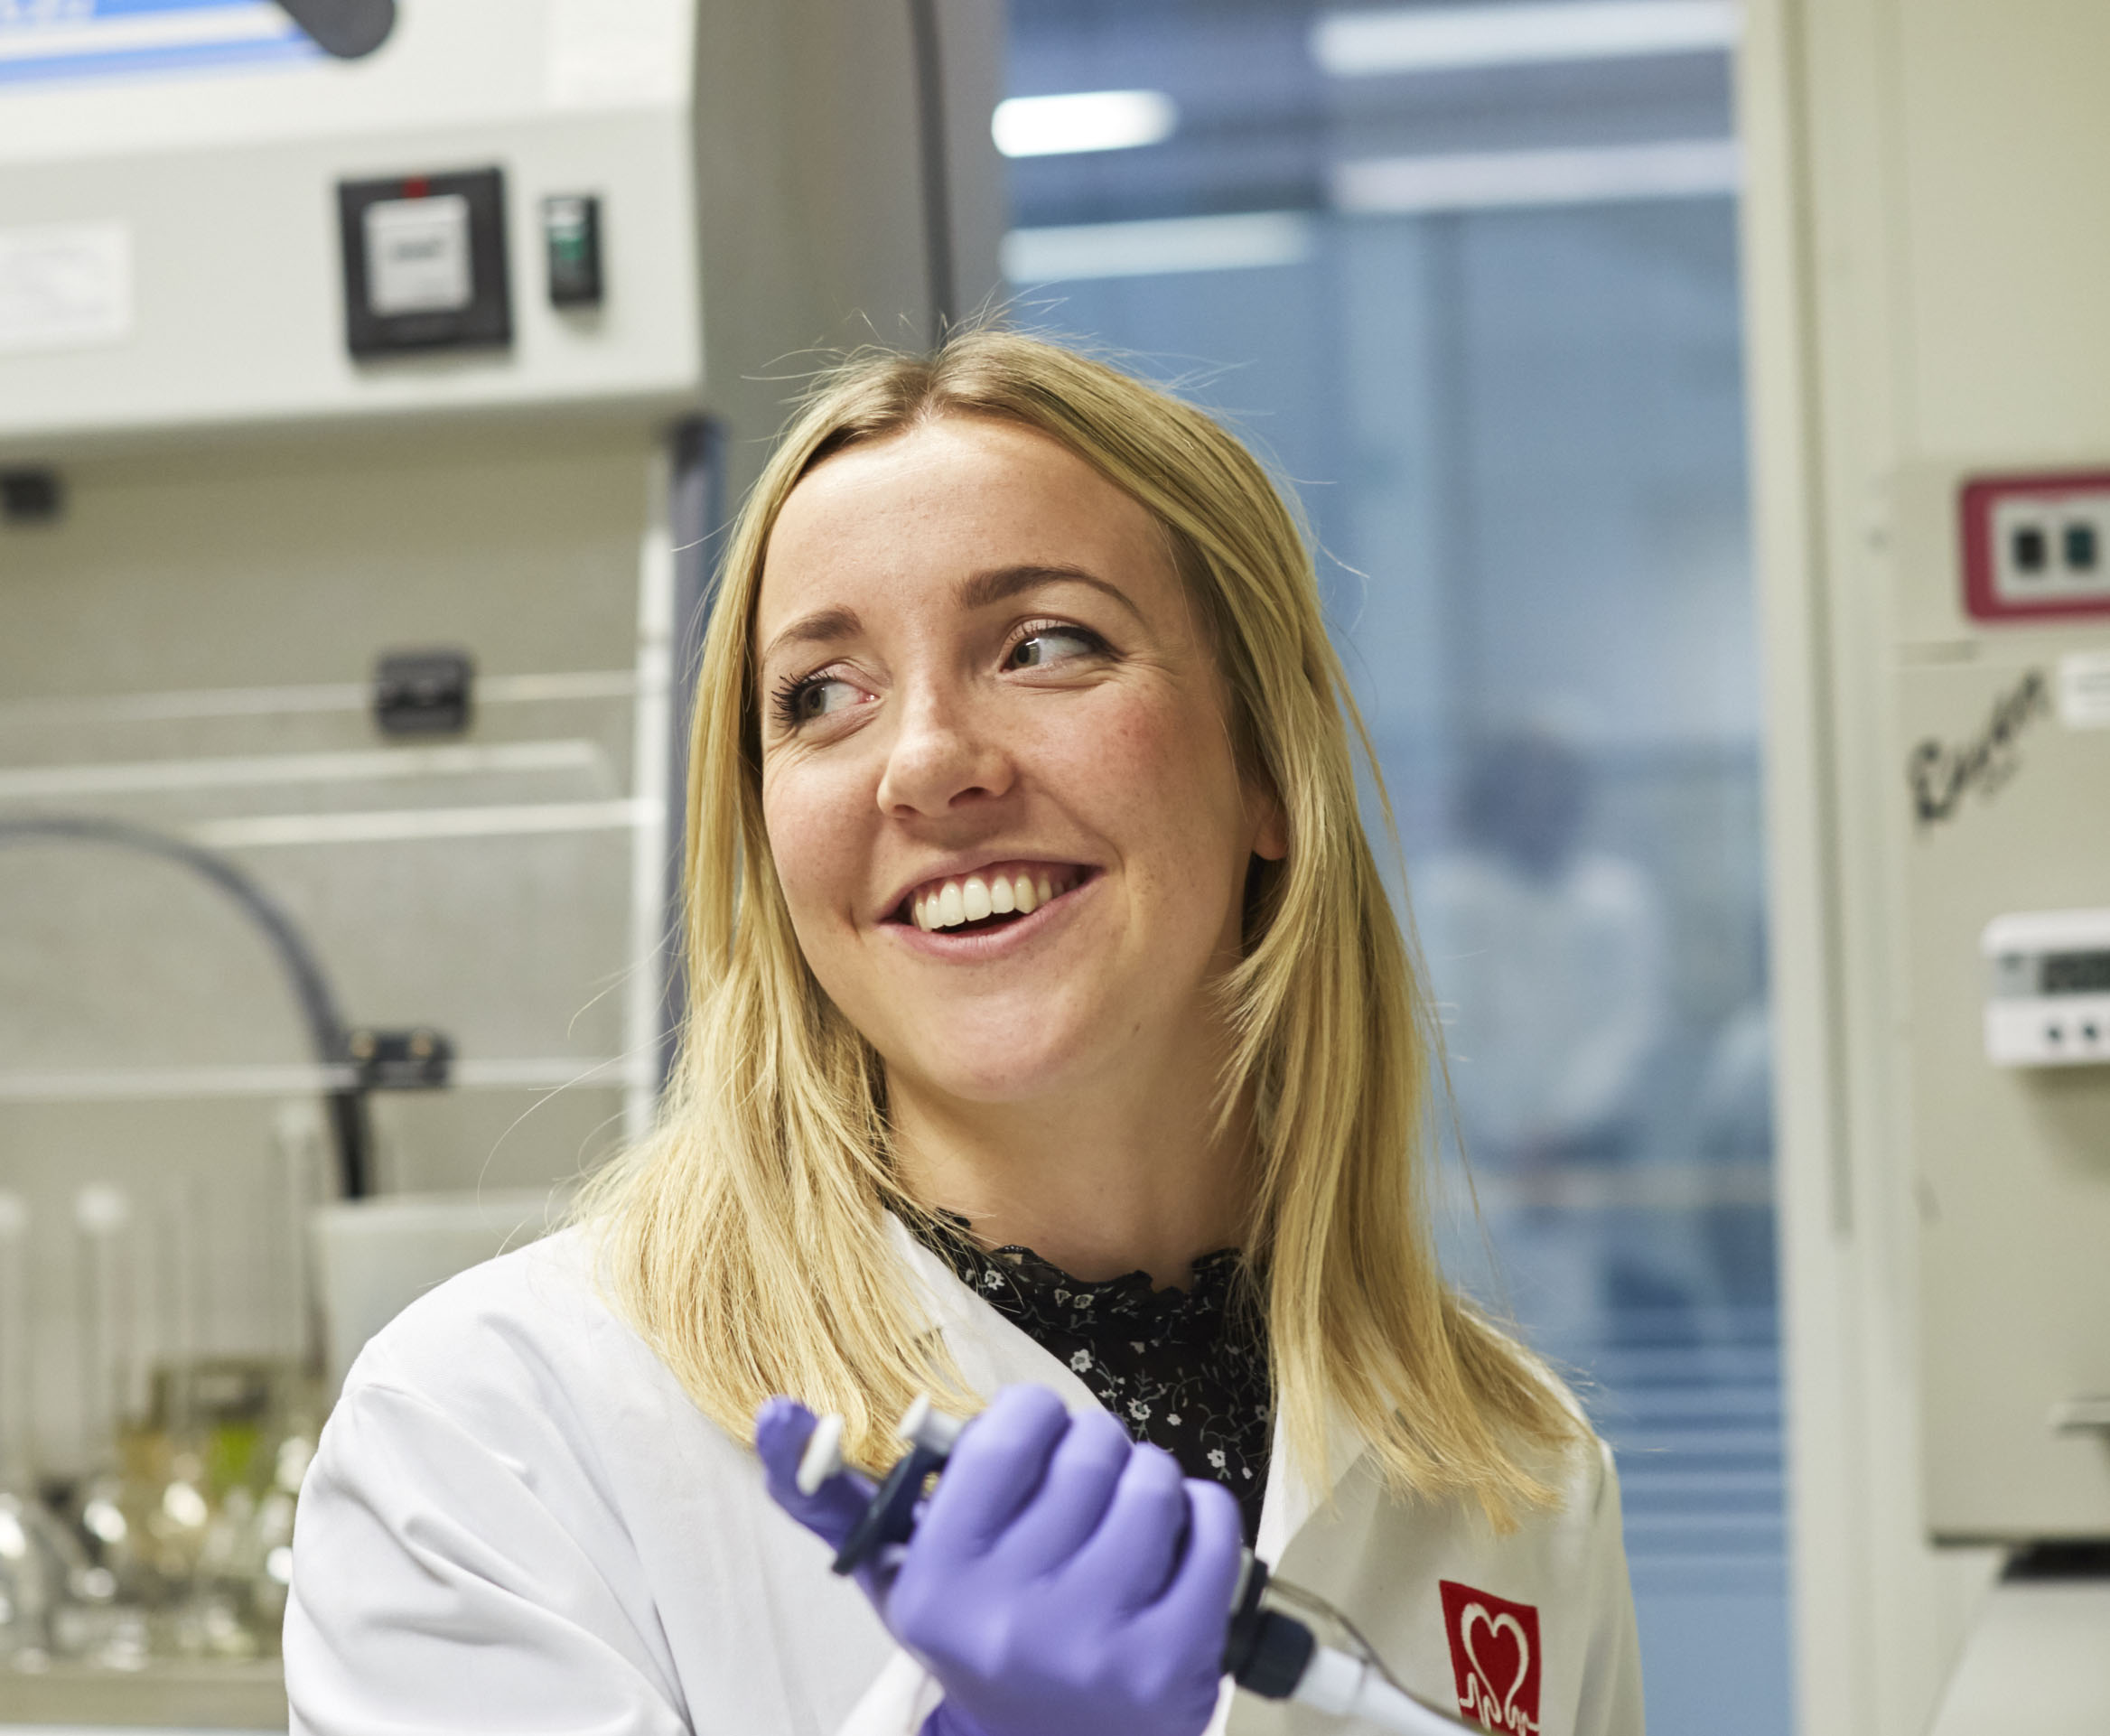 Researcher Alice Francis wearing a white coat and holding a syringe